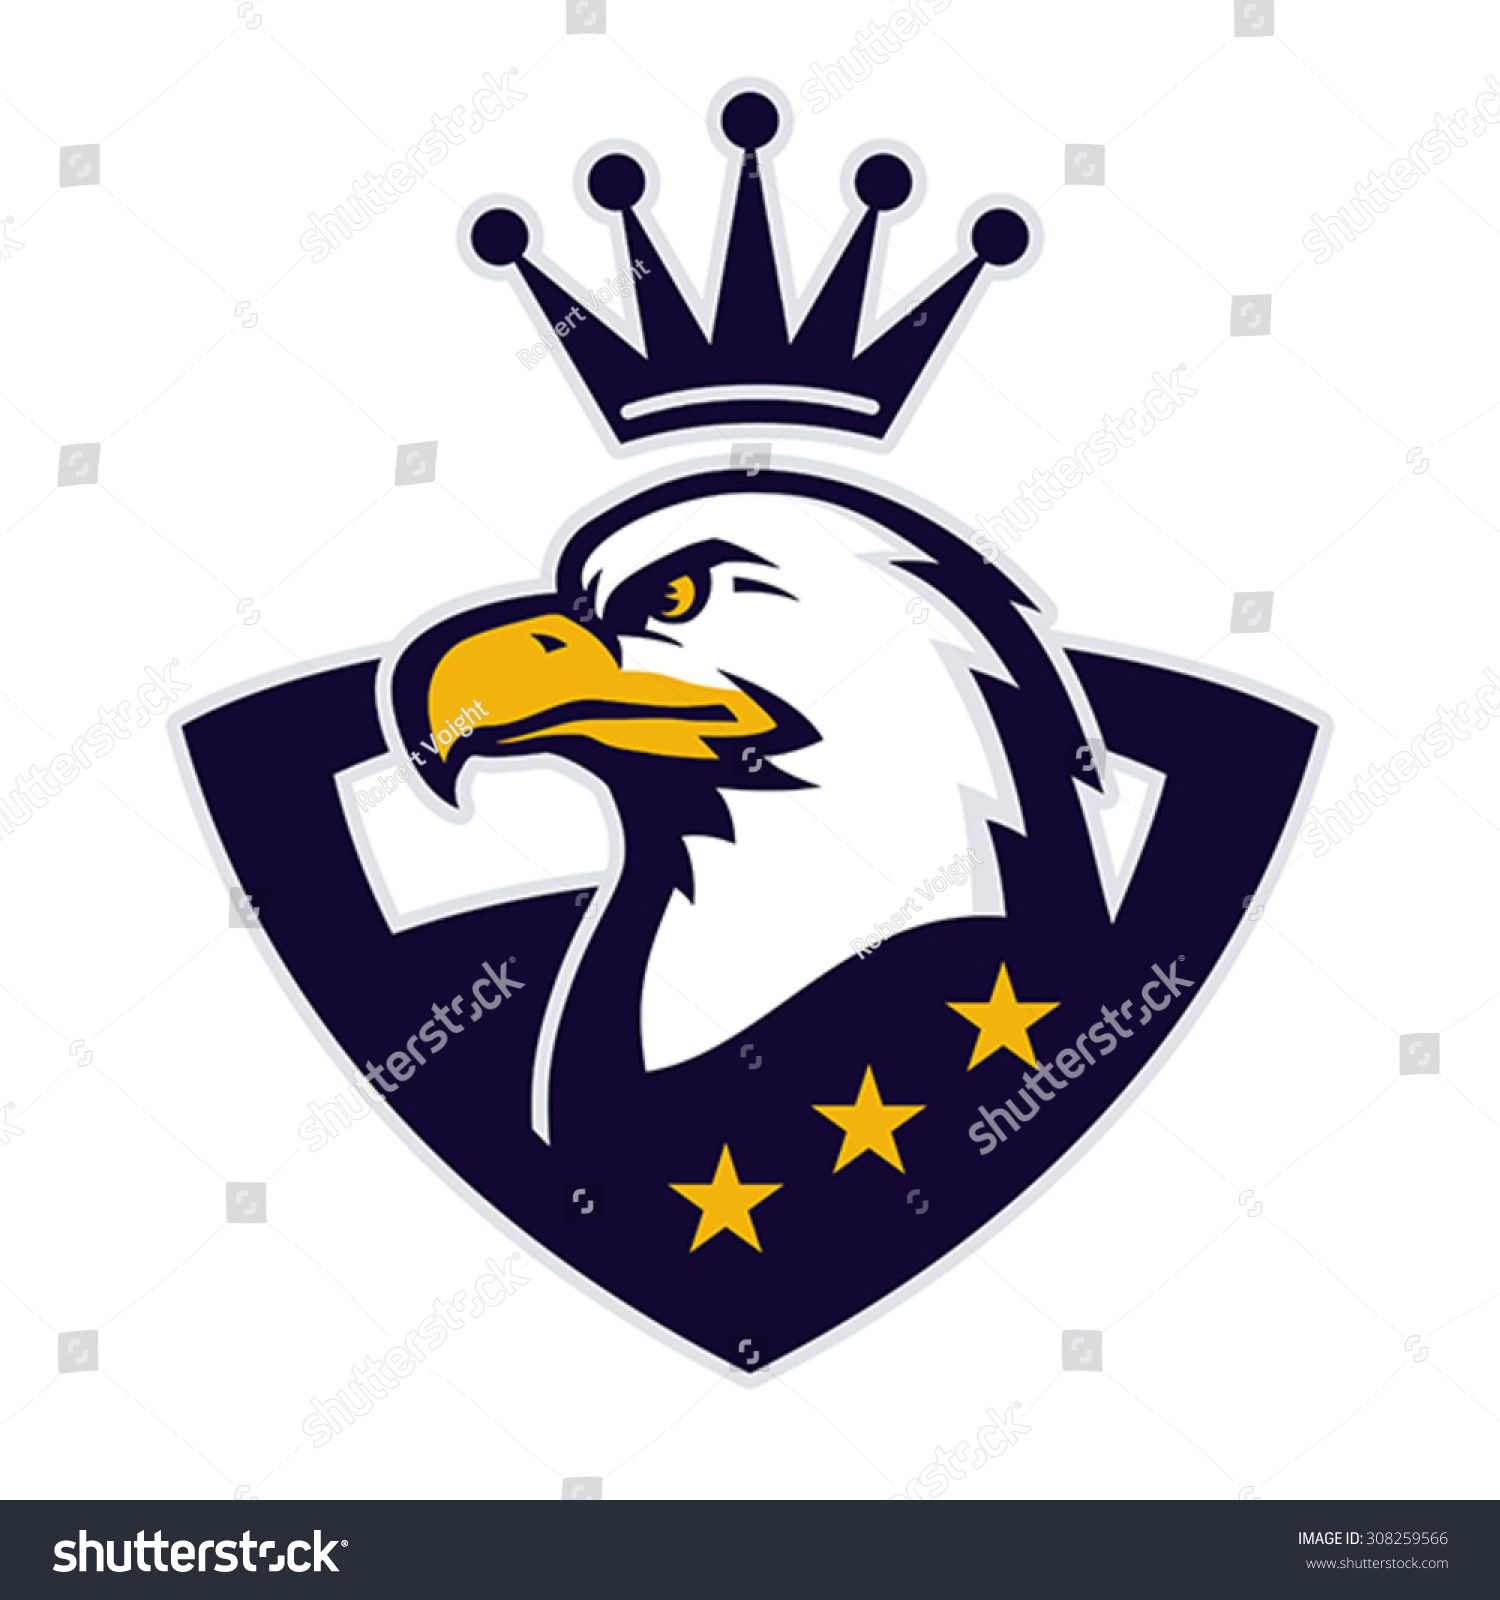 medium resolution of mascot with crowned american eagle logo design logodesign vector illustration eagle crown vector illustration by robert voight